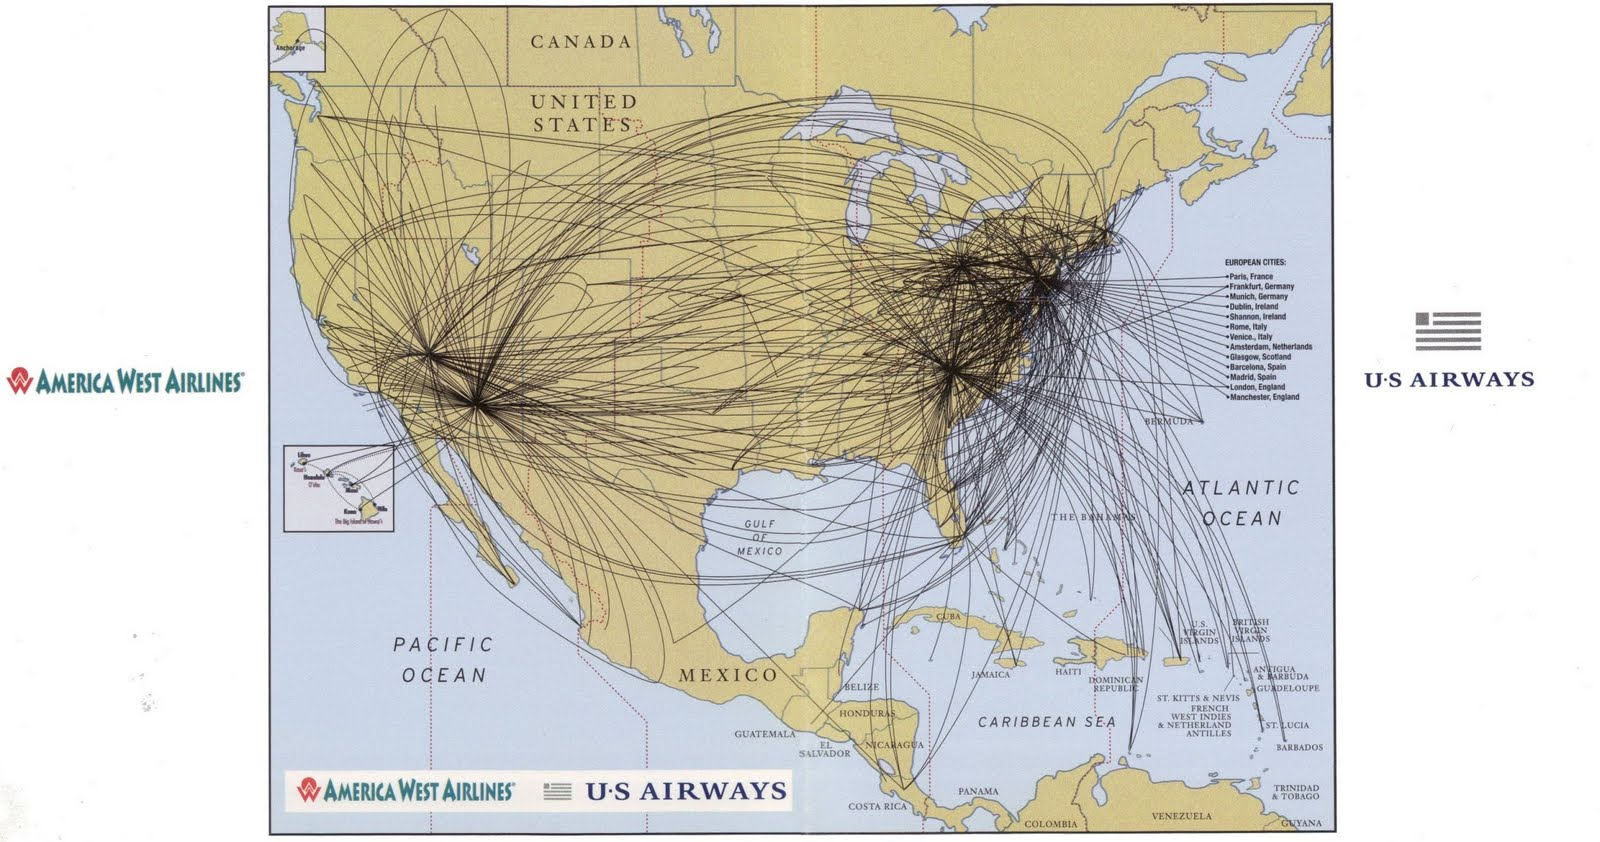 Air Lines Route Map North America From Cincinnati Route Map Air - Airline flights map of france to us